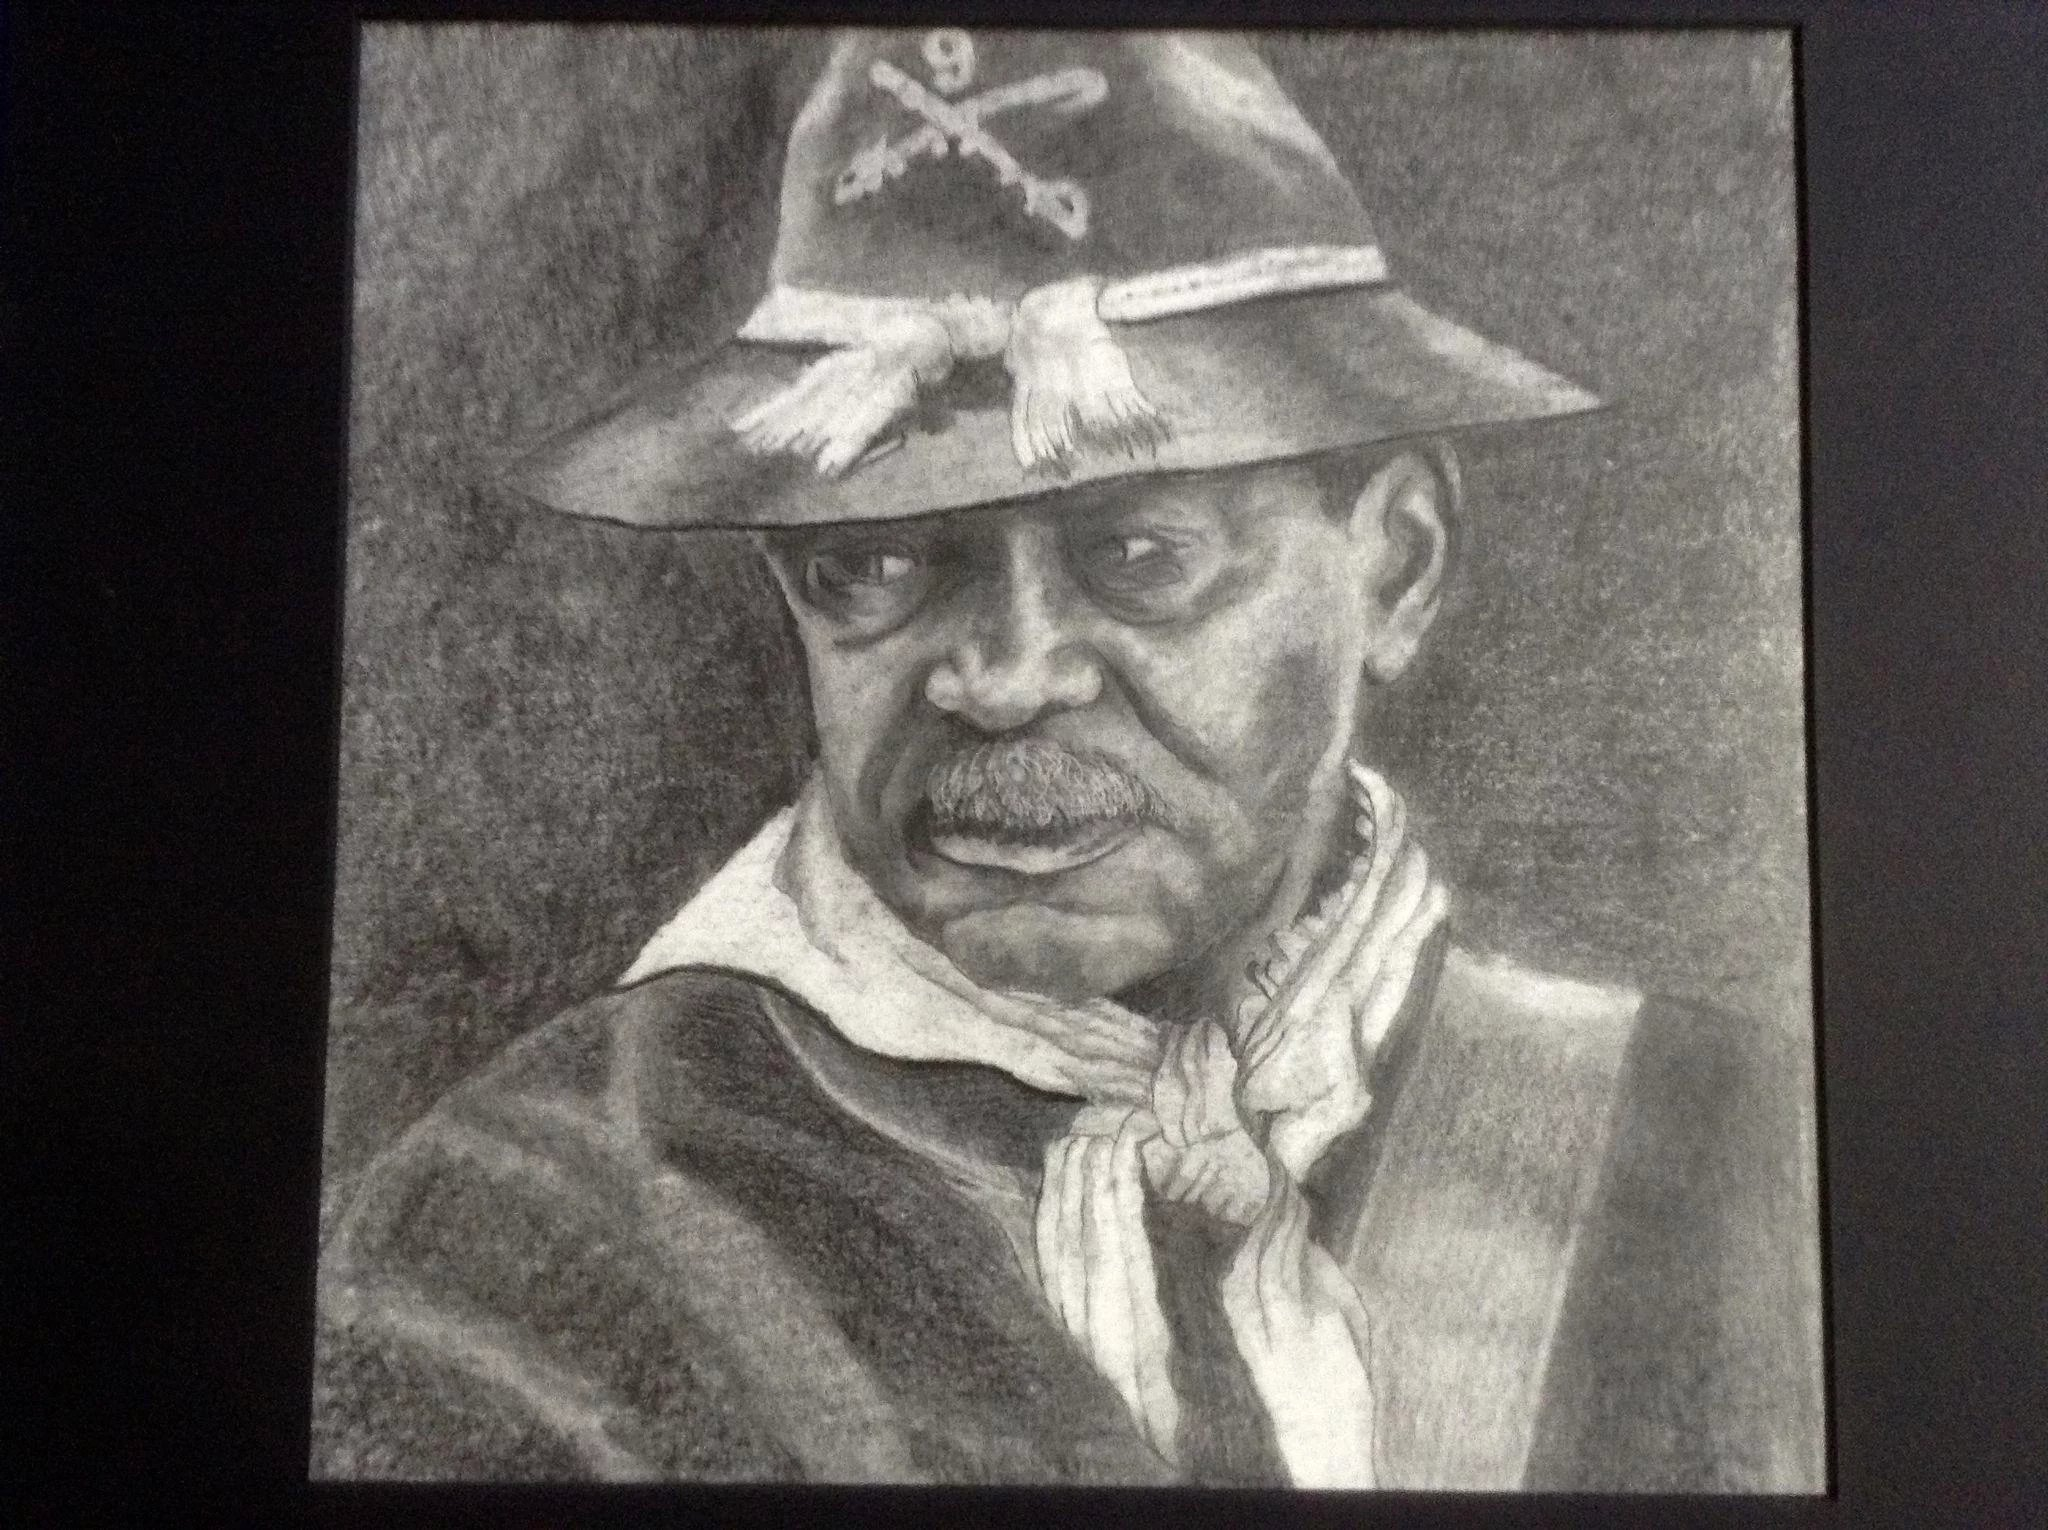 Union soldier from the civil war graphite pencil drawing black americana works on paper